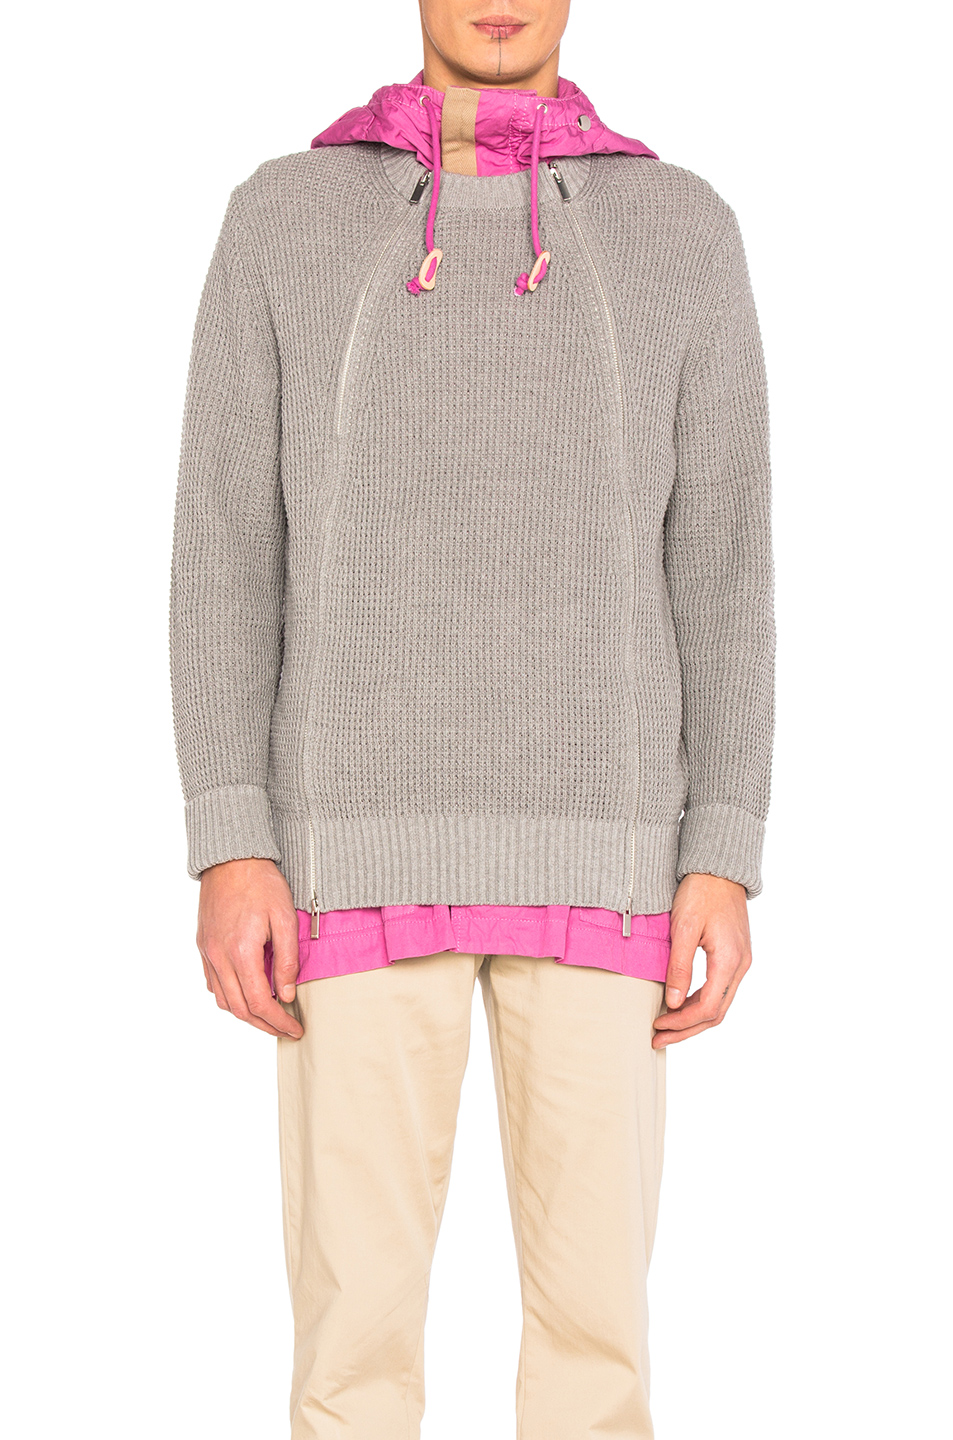 Sacai Chunky Knit Blouson in Gray,Pink